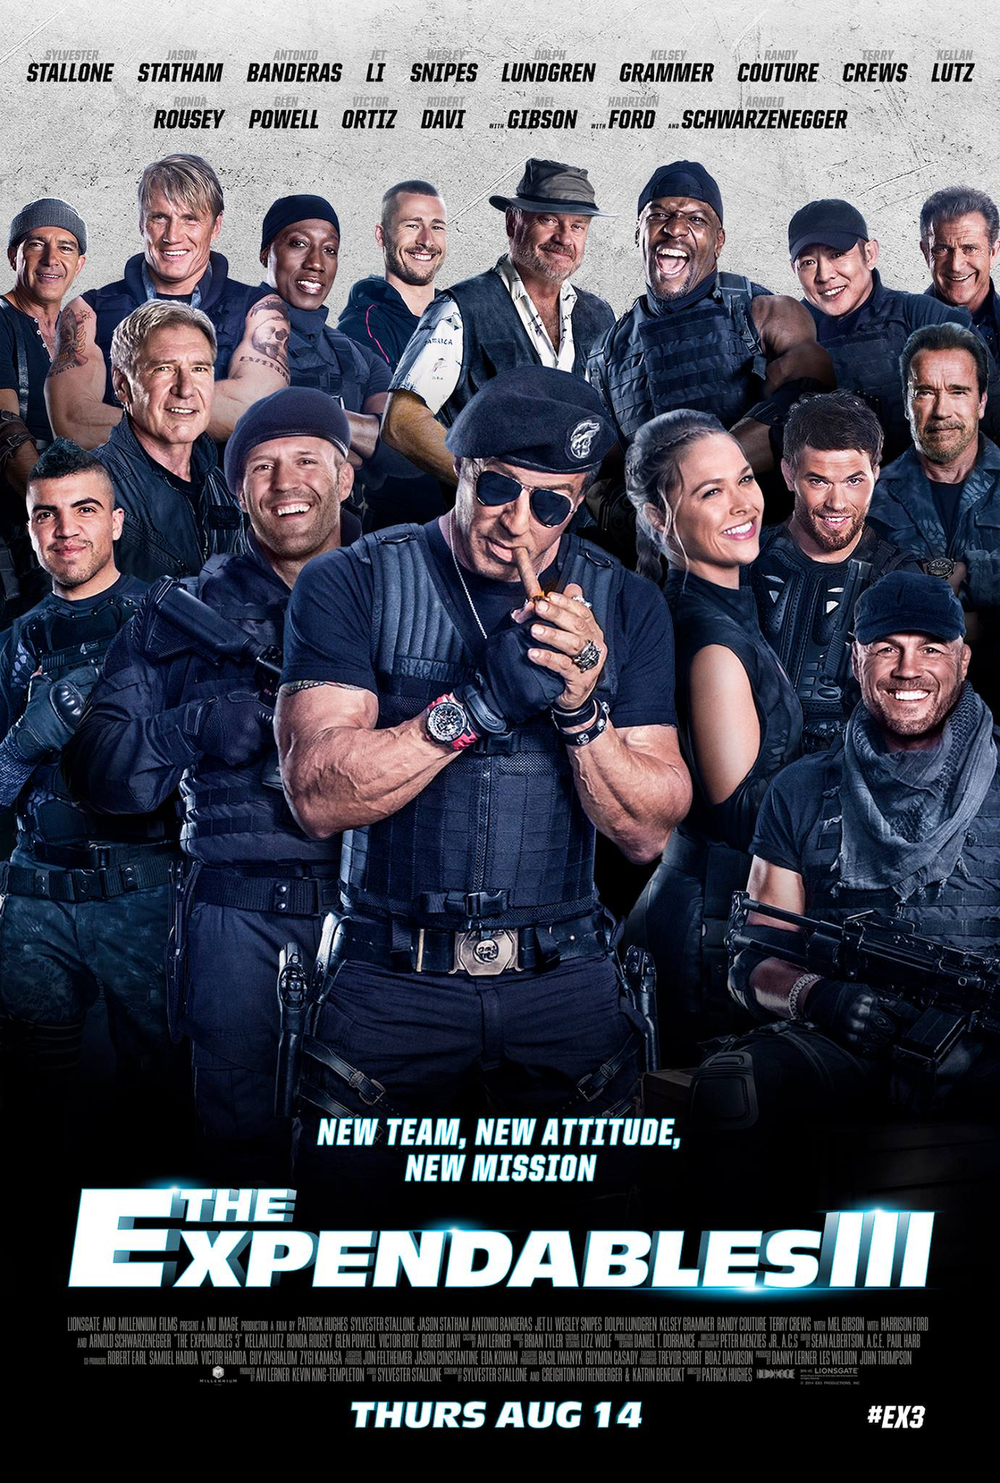 7-Expendable 3 Poster.jpg